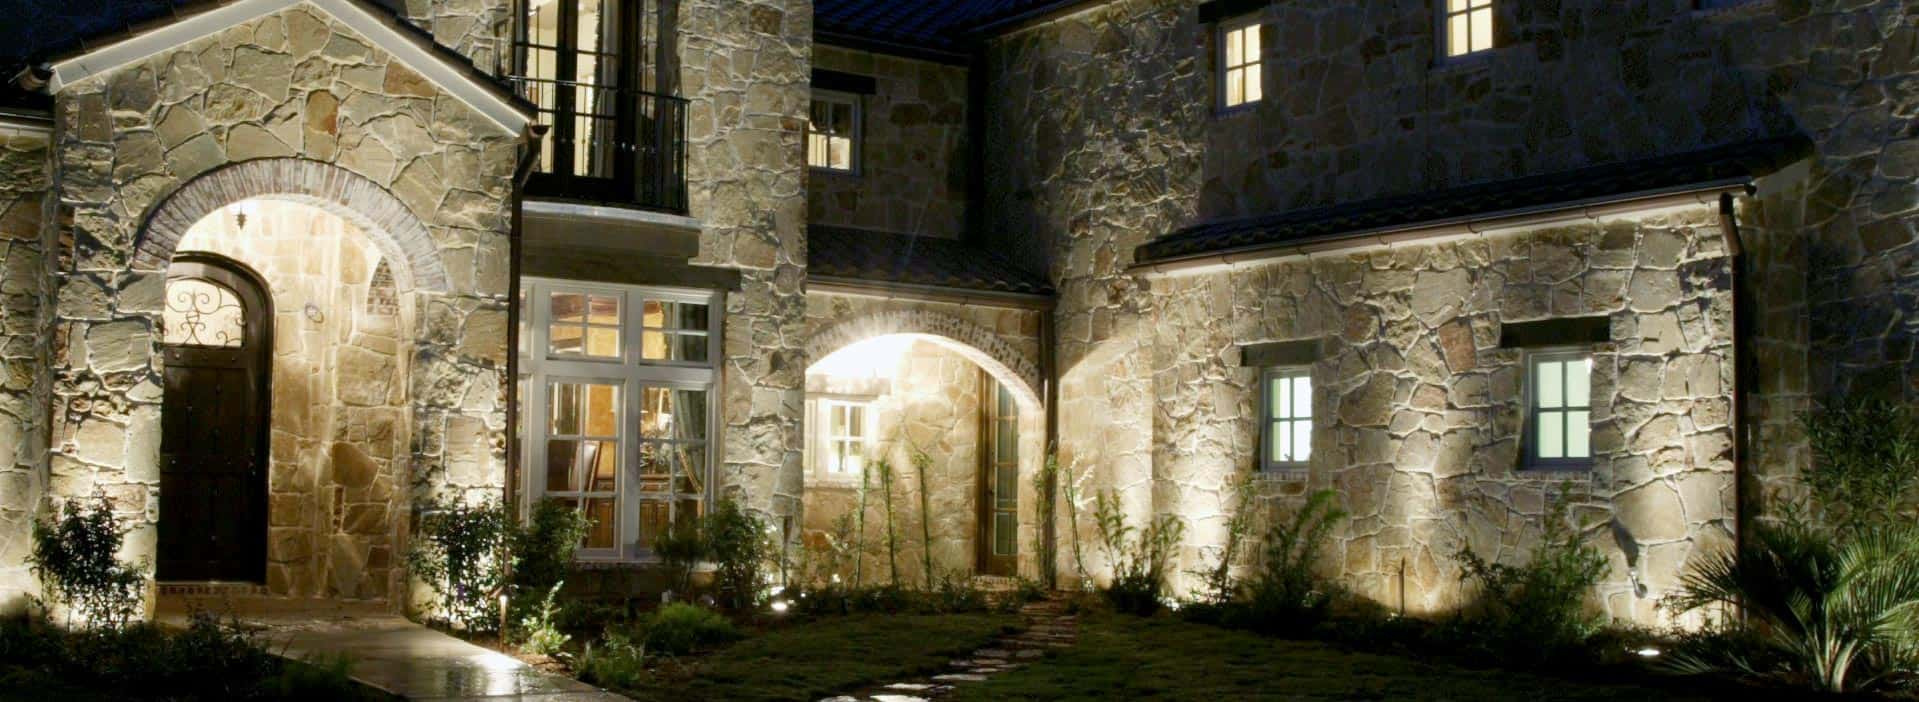 A home's beautiful stonework is accented by outdoor lighting